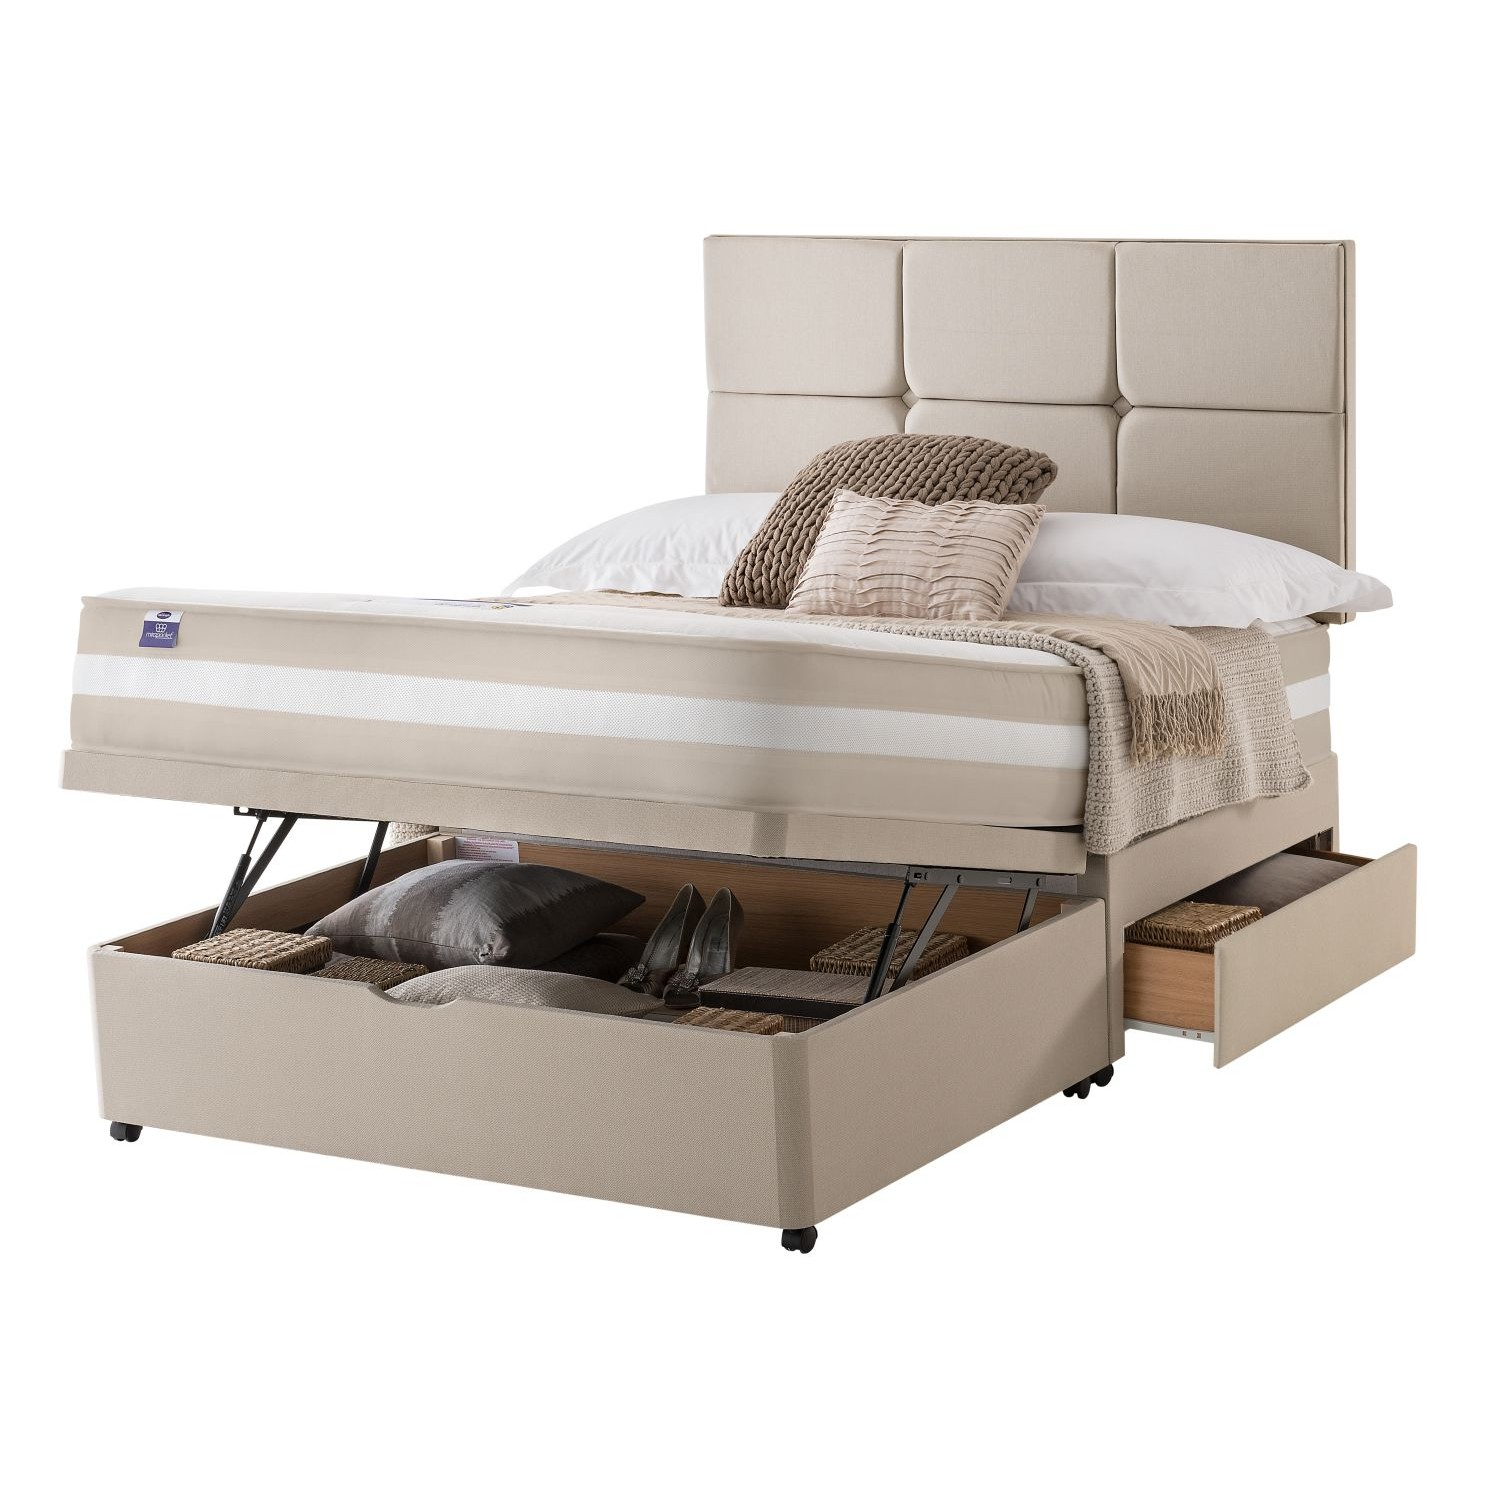 Silentnight bari platform top 2 continental drawer ottoman d for Cheap double divan with drawers